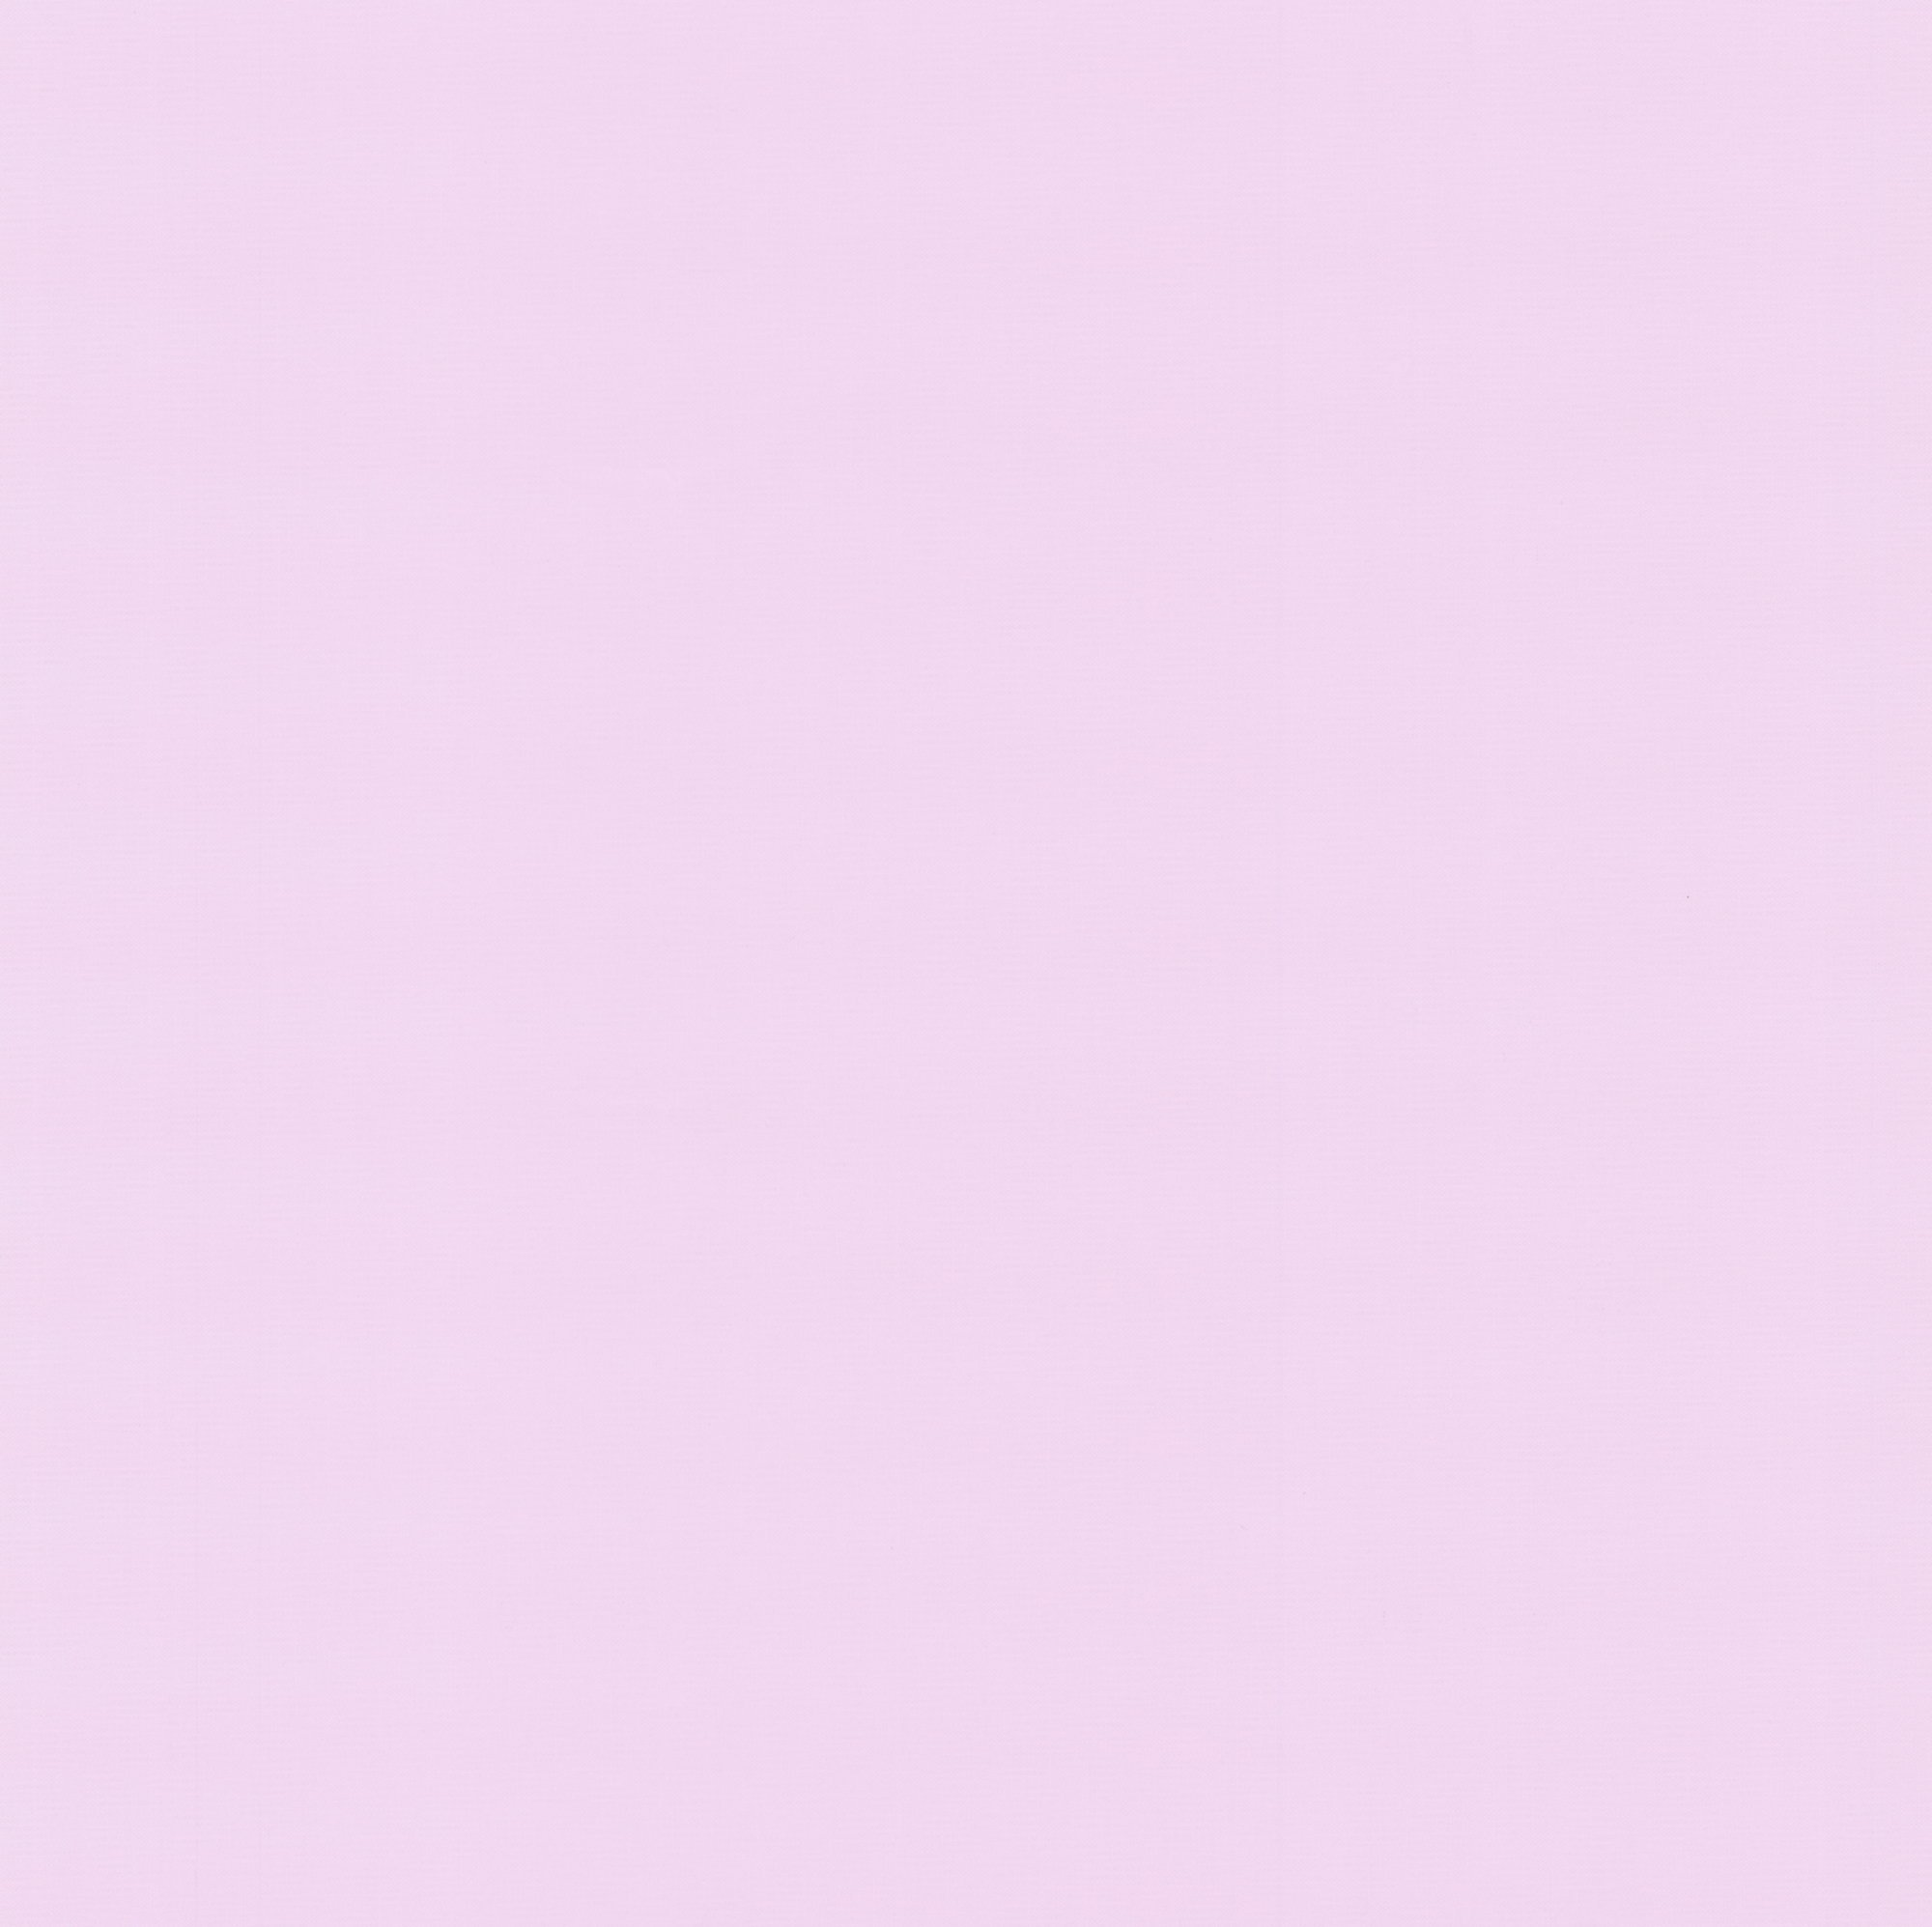 Pink Plain Wallpaper   Wallpapers High Definition 2000x1995